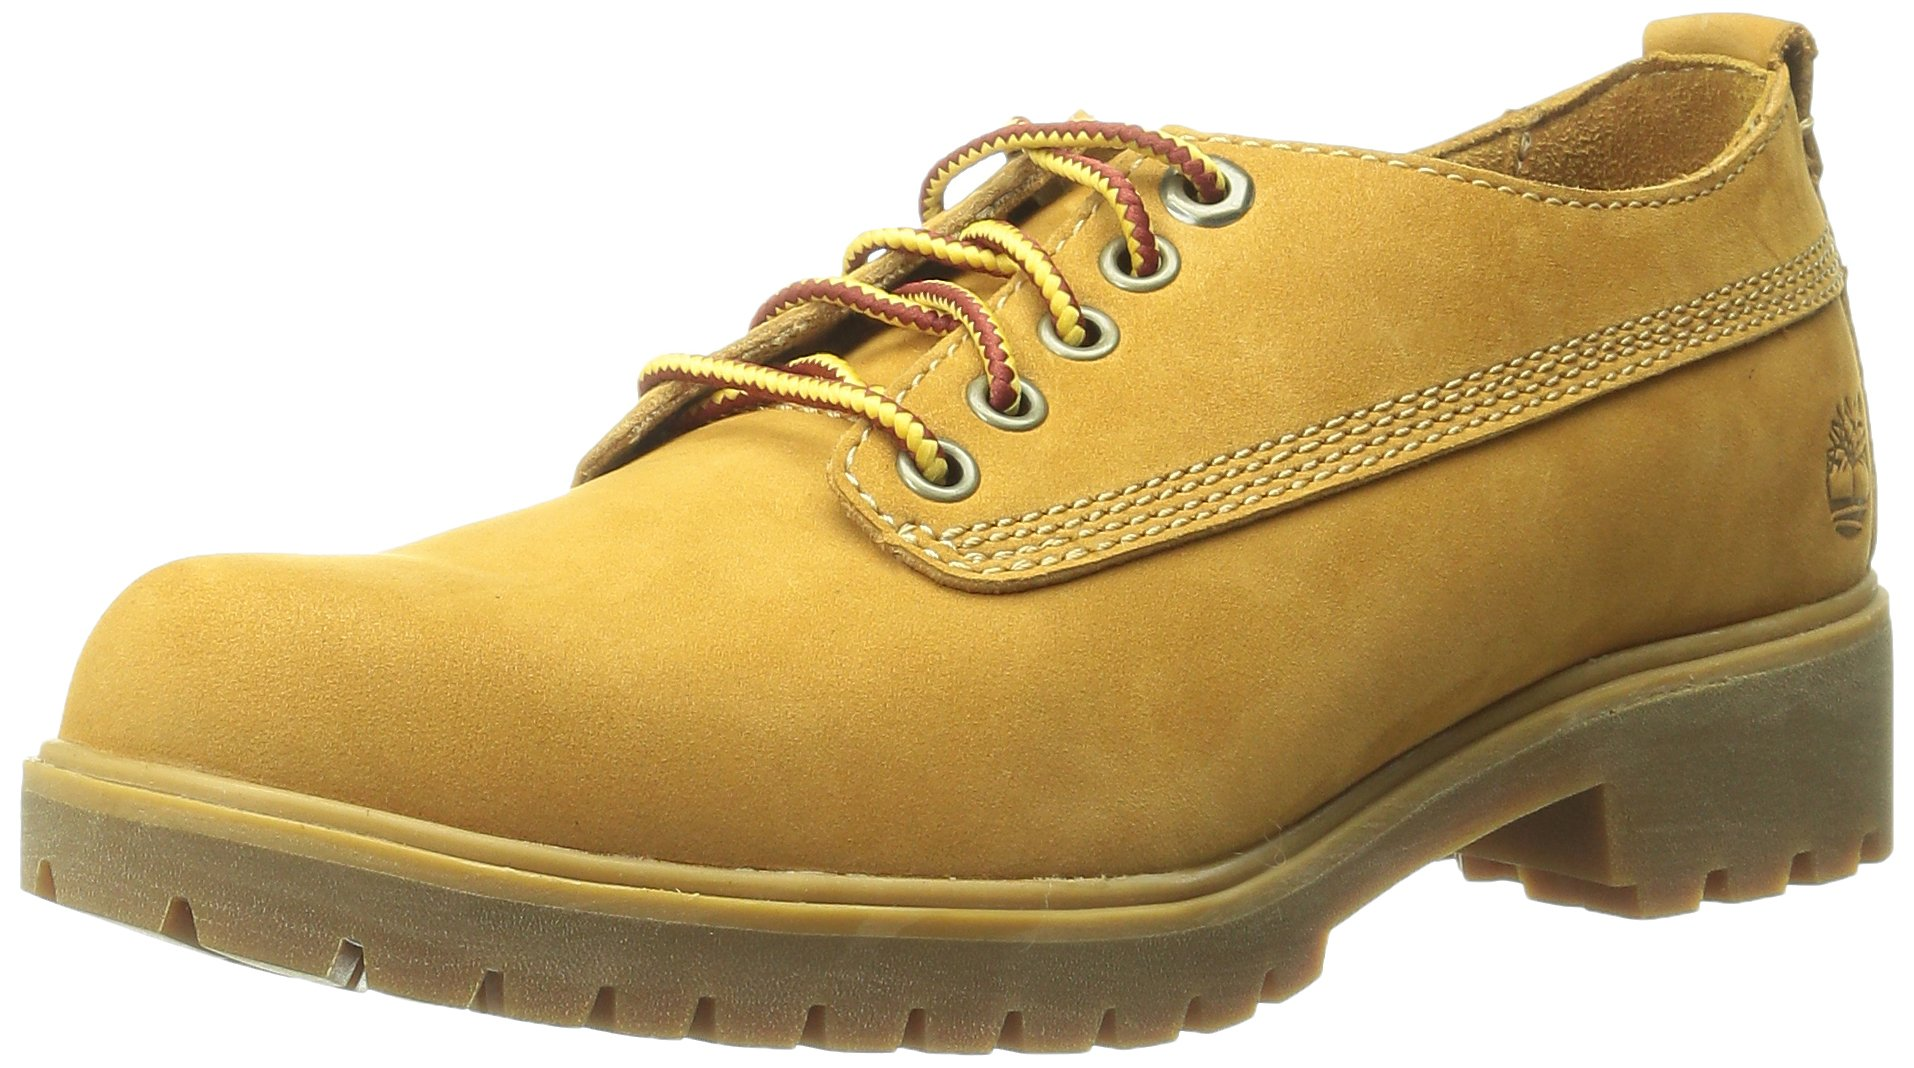 Timberland Women's Lyonsdale Lace Oxford, Wheat Nubuck, 8 M US